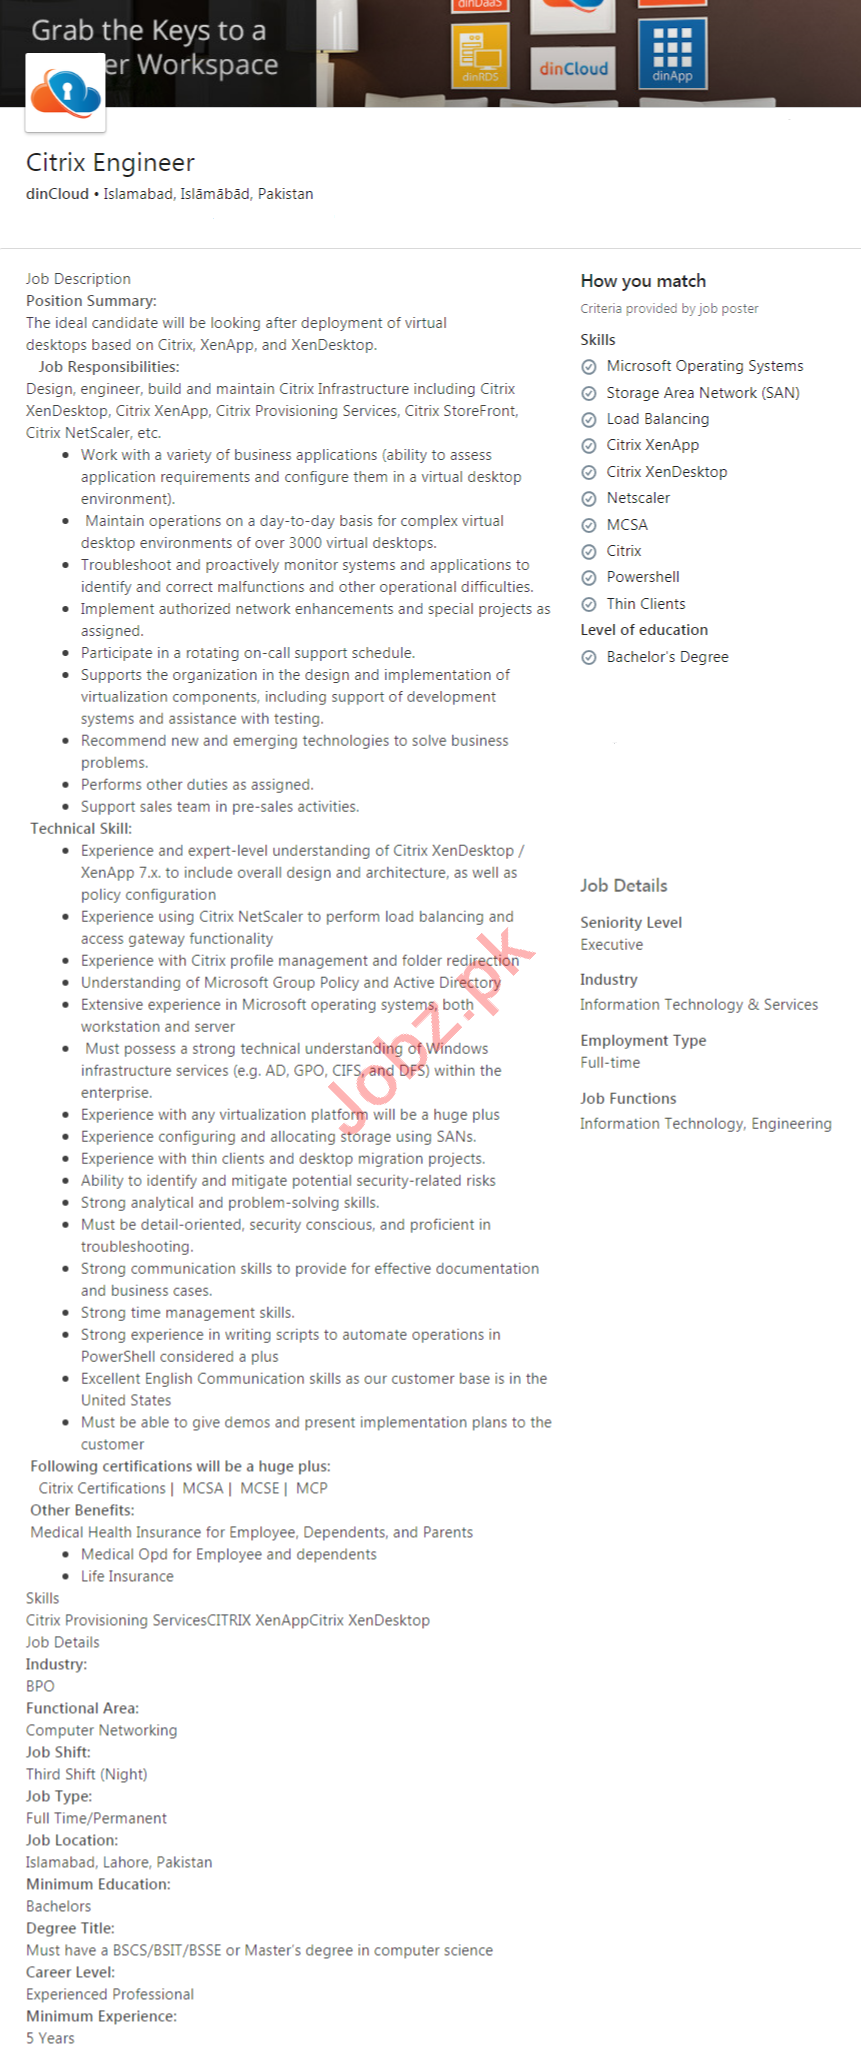 dinCloud Islamabad Jobs 2020 for Citrix Engineer